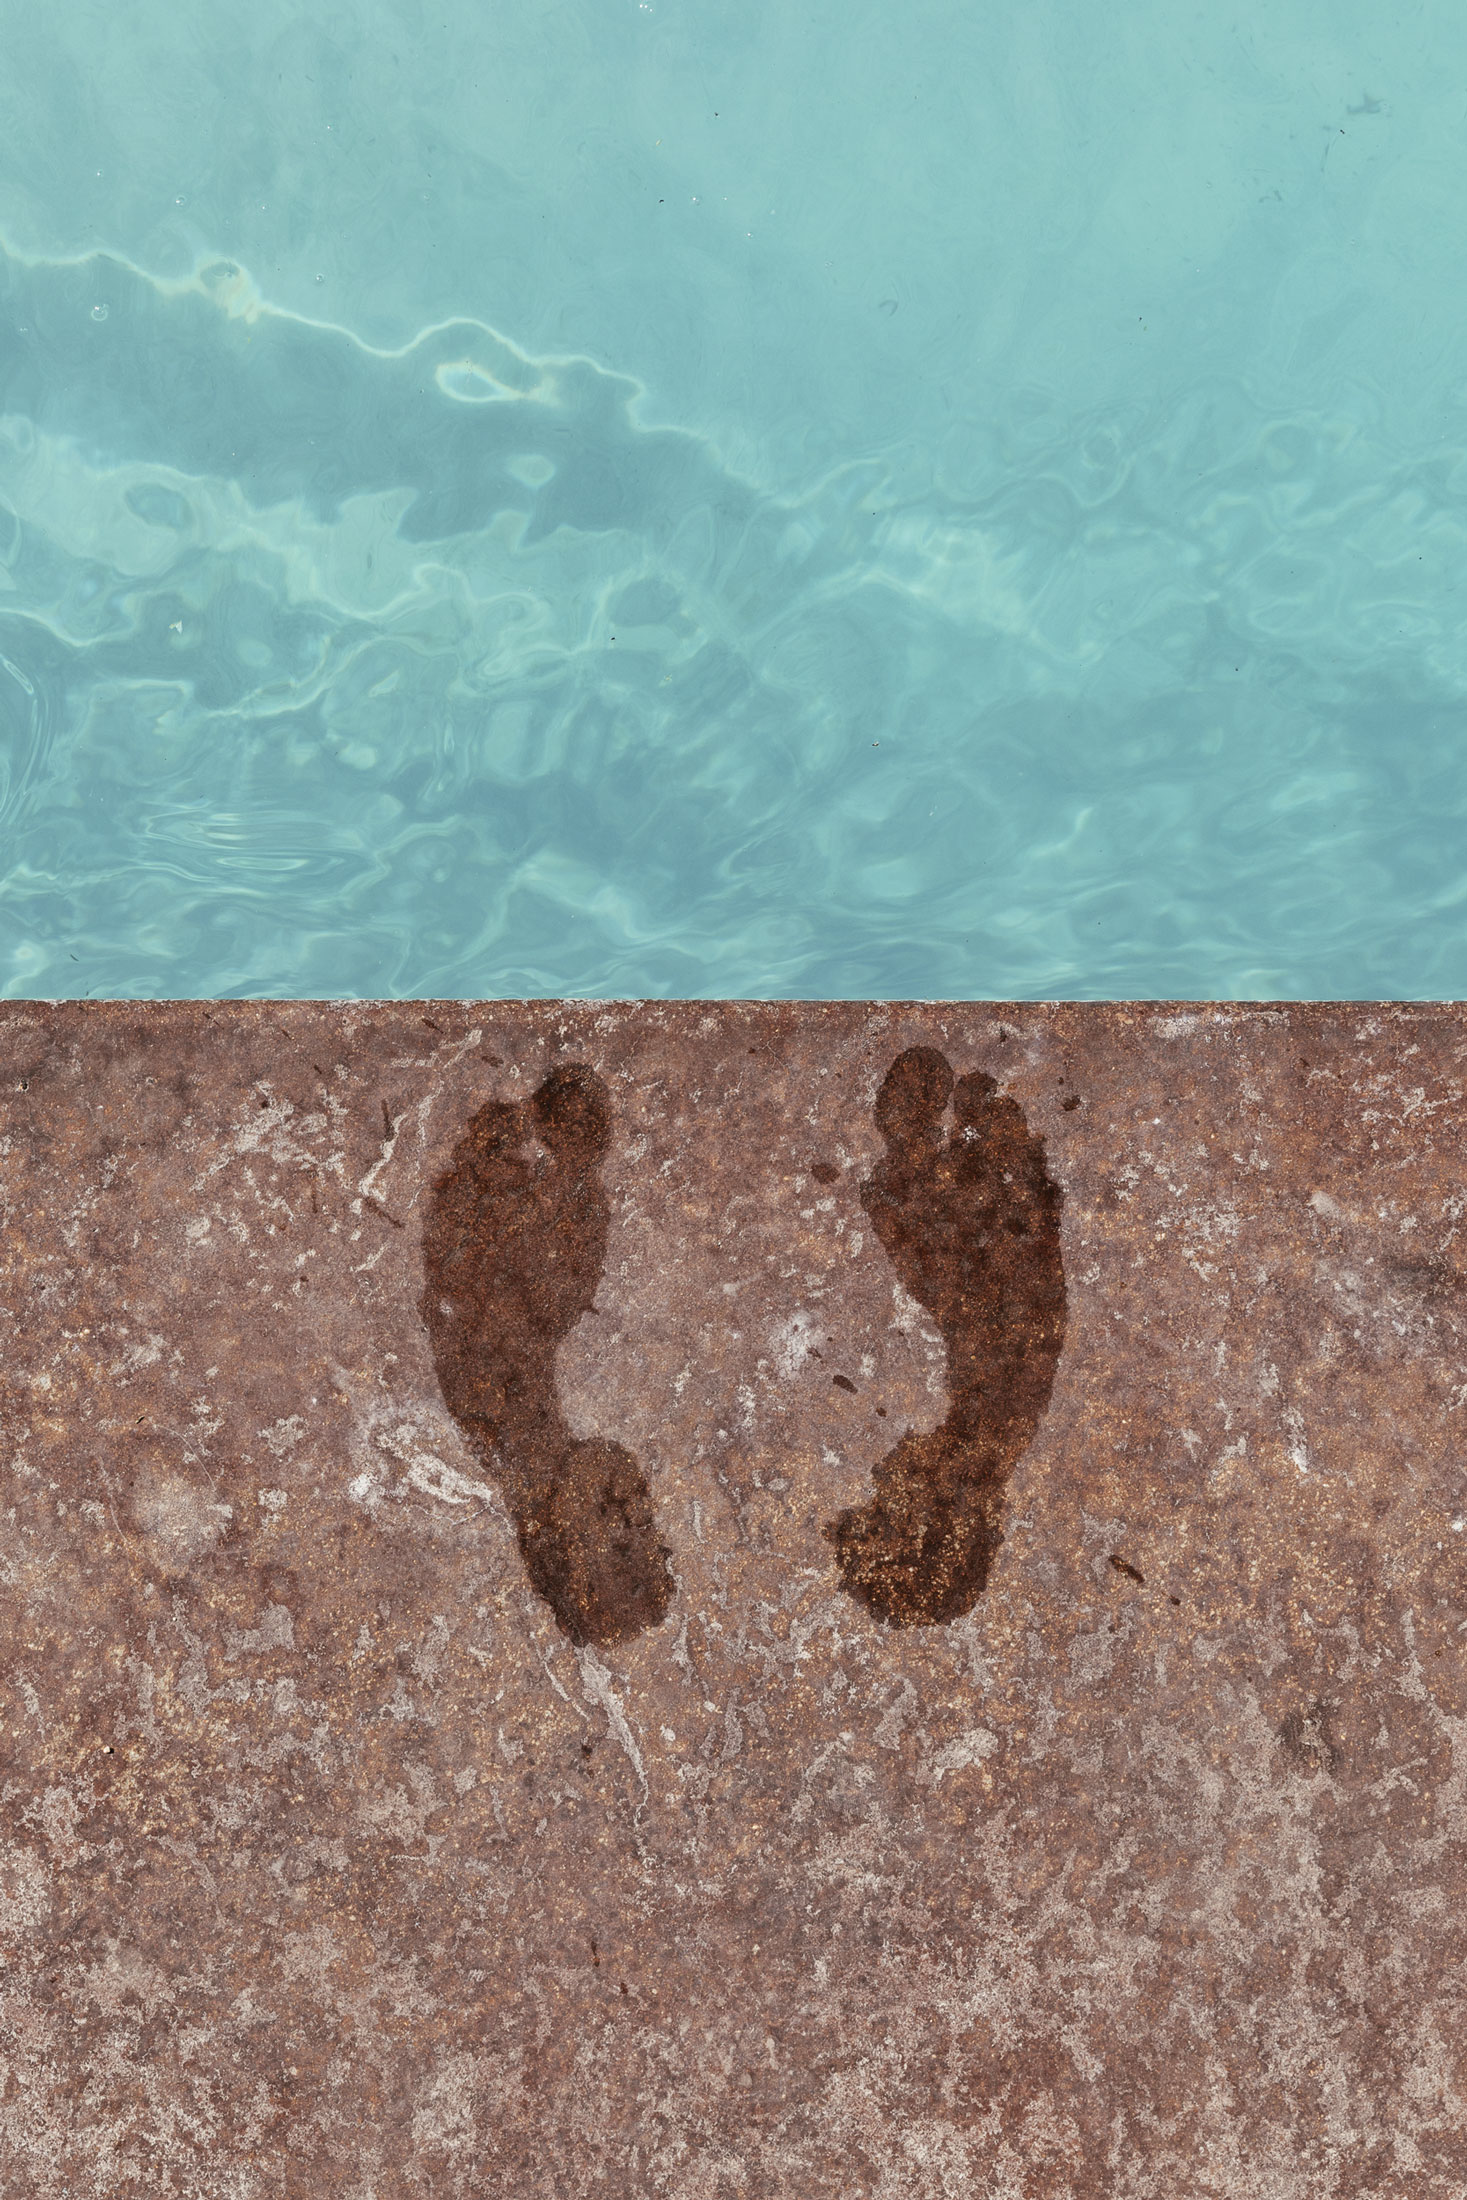 Wet footprints at a pool. Kimberly Genevieve lifestyle photographer Los Angeles